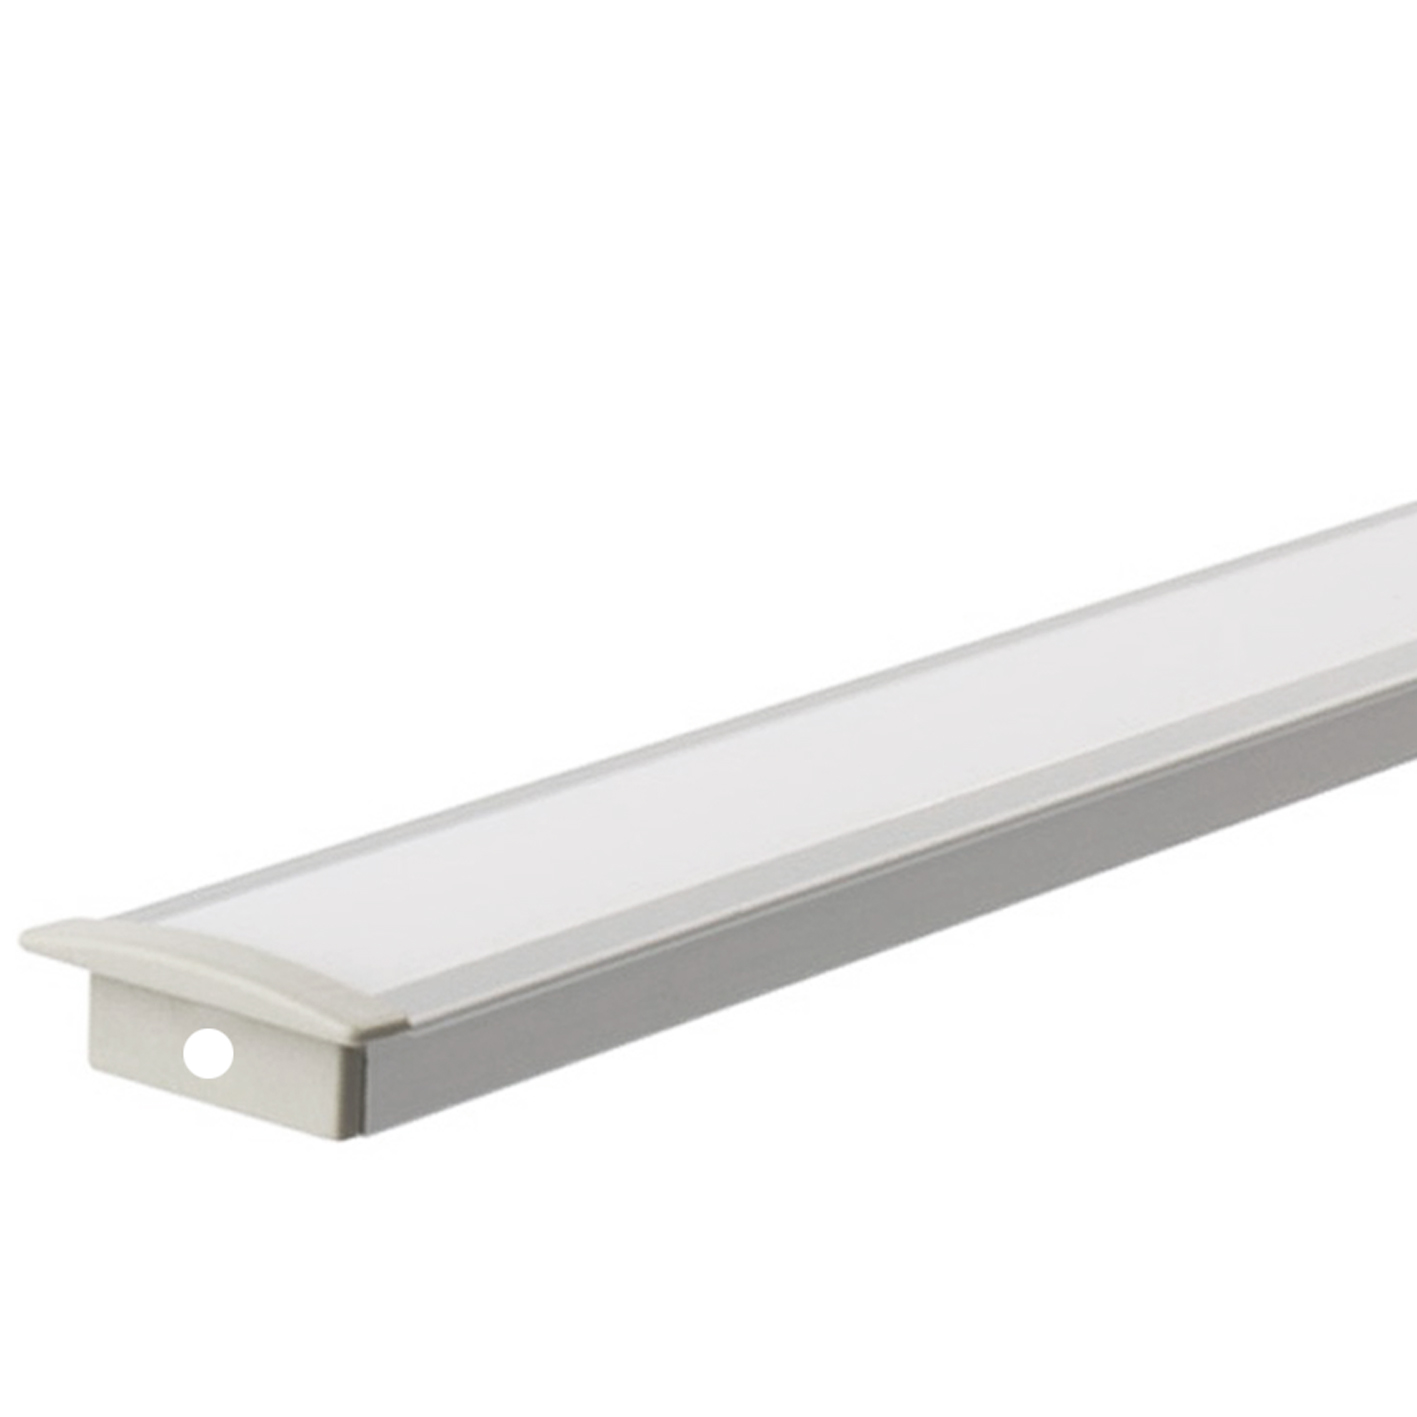 Profile for led Strip 1m BAR recessed Aluminum Matte Cover